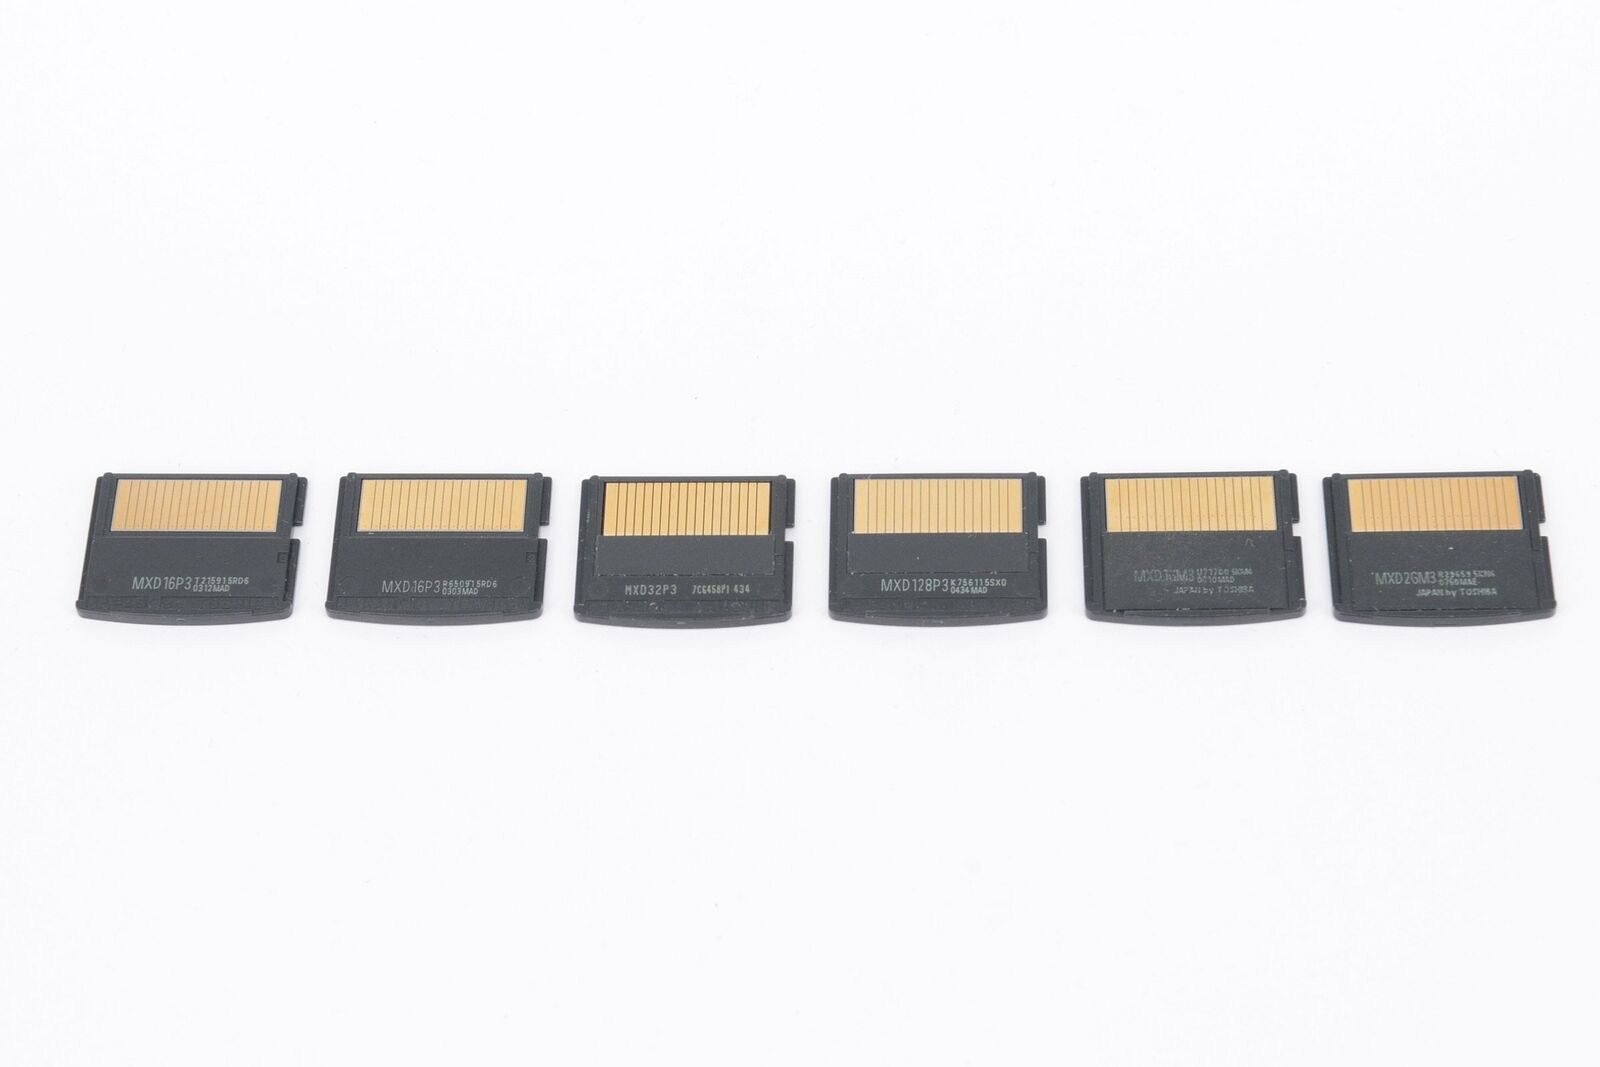 OLYMPUS 6x xD Memory Cards from 16MB to 3GB in size & Olympus Cardholder - P...